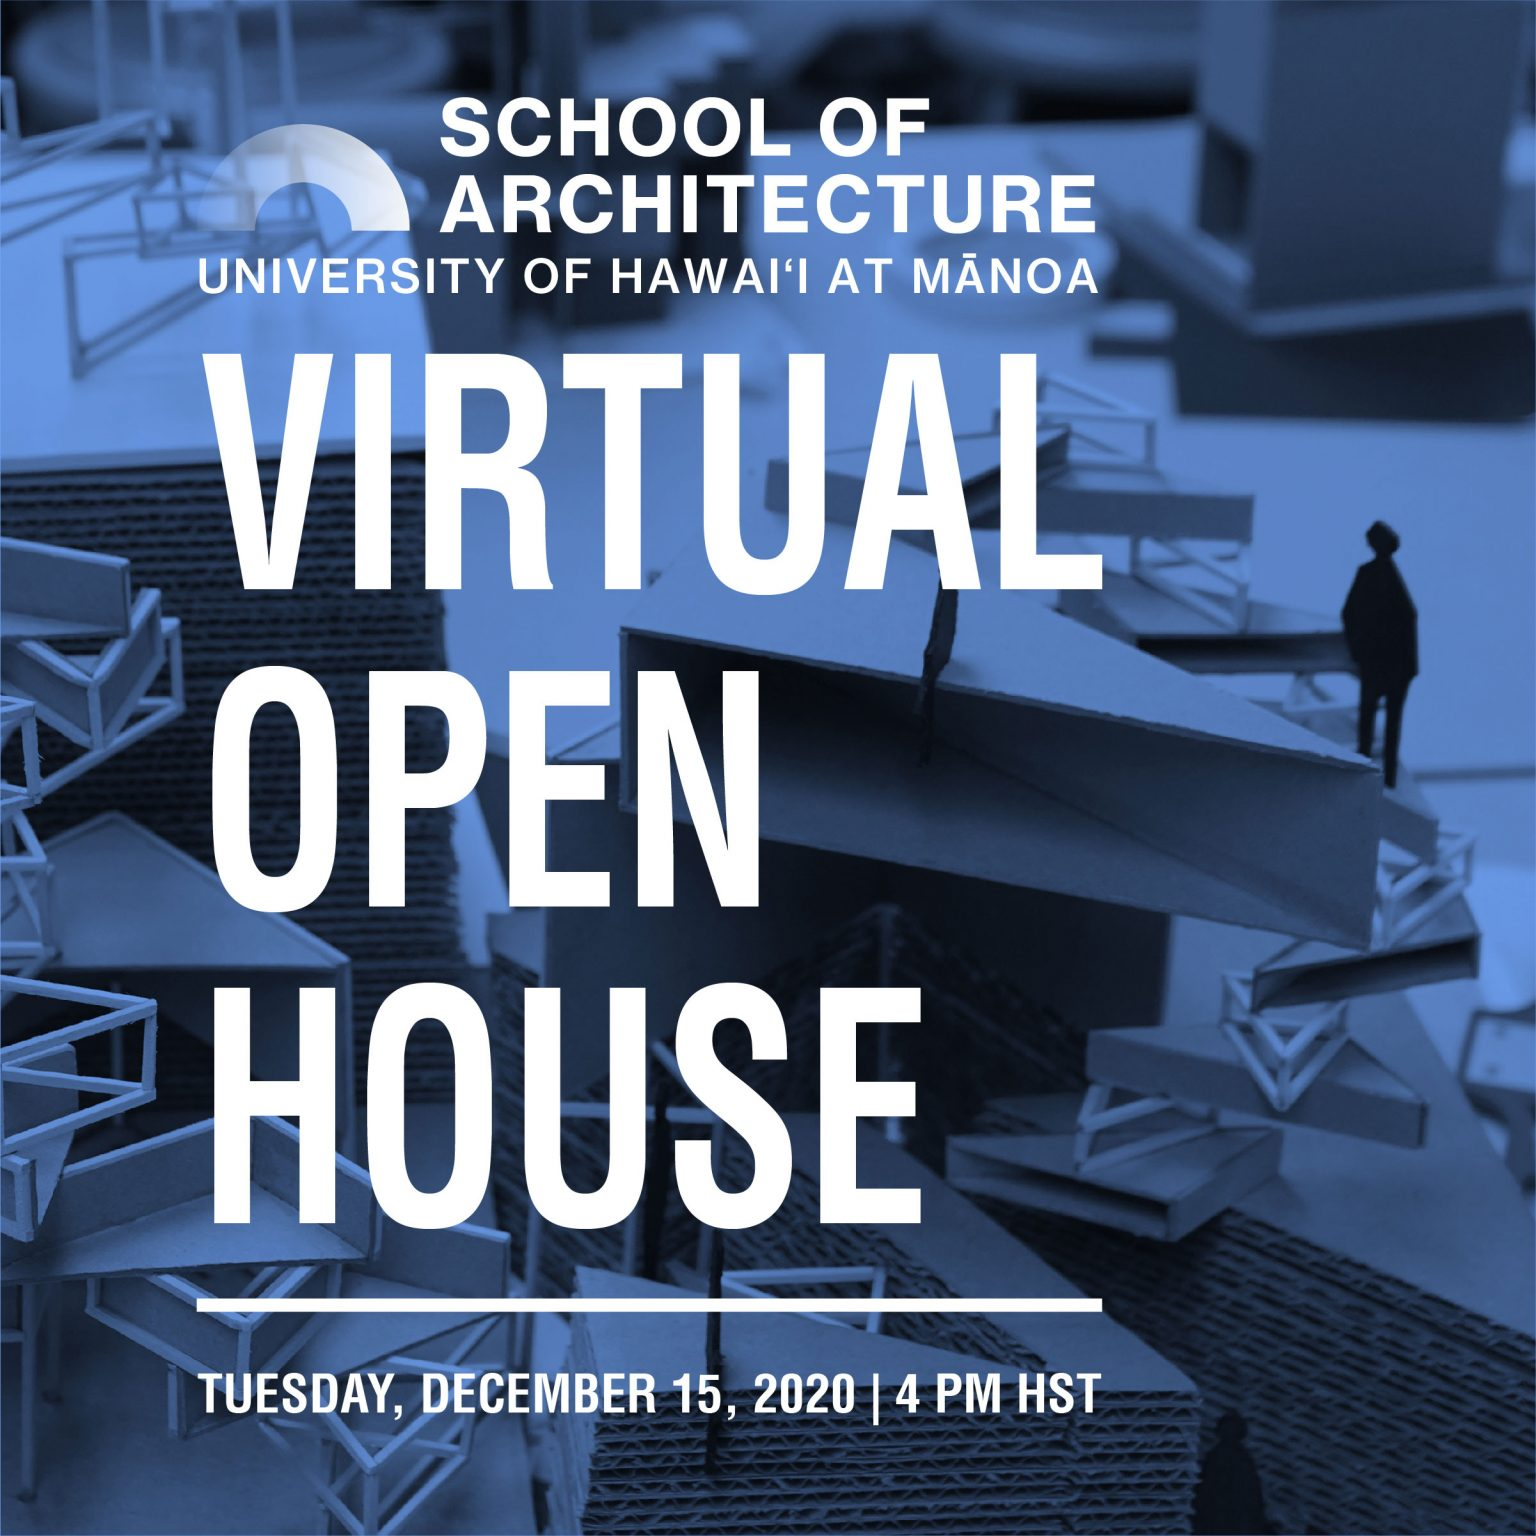 Please join us for a University of Hawaiʻi at Mānoa School of Architecture Virtual Open House!